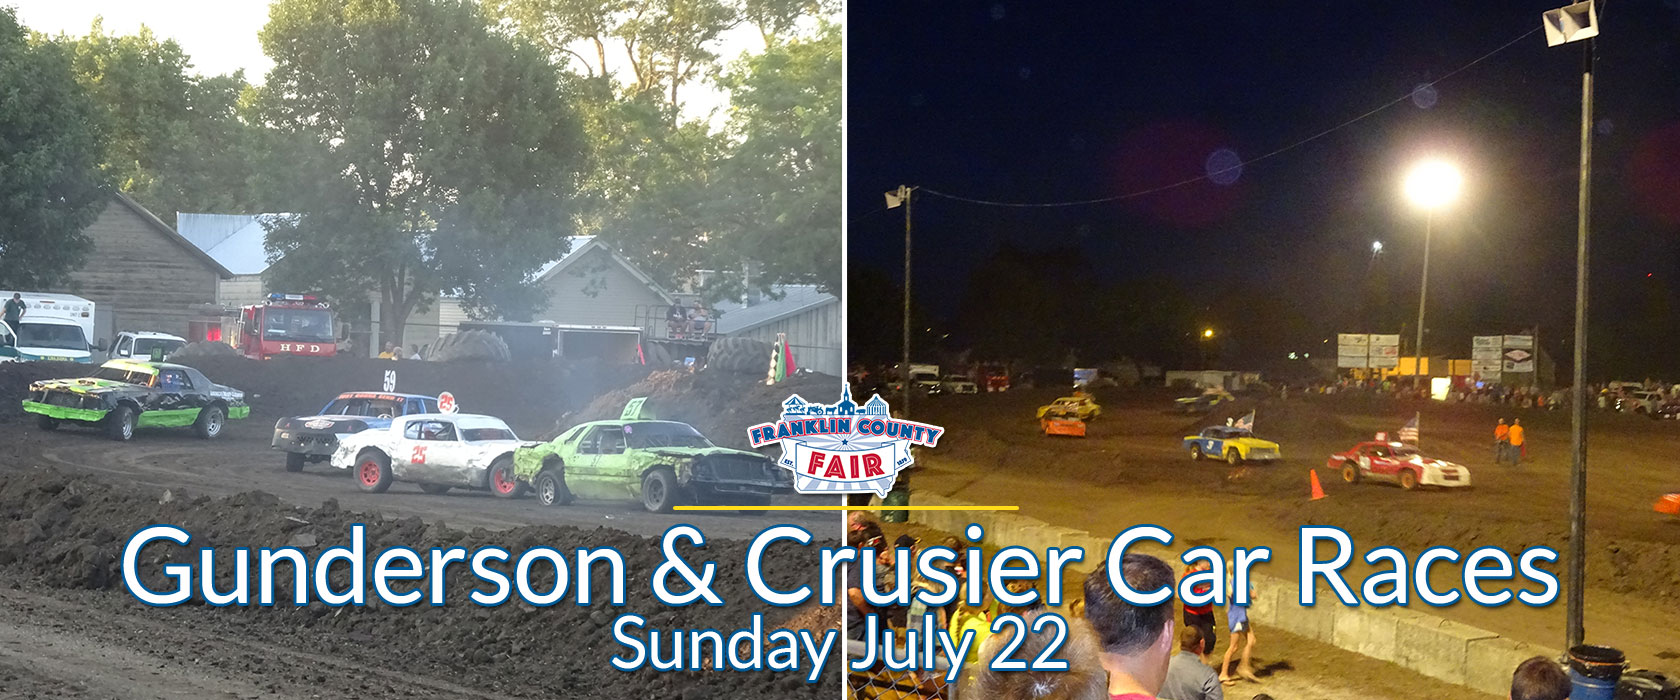 Gunderson & Cruiser Car Races Slide Image